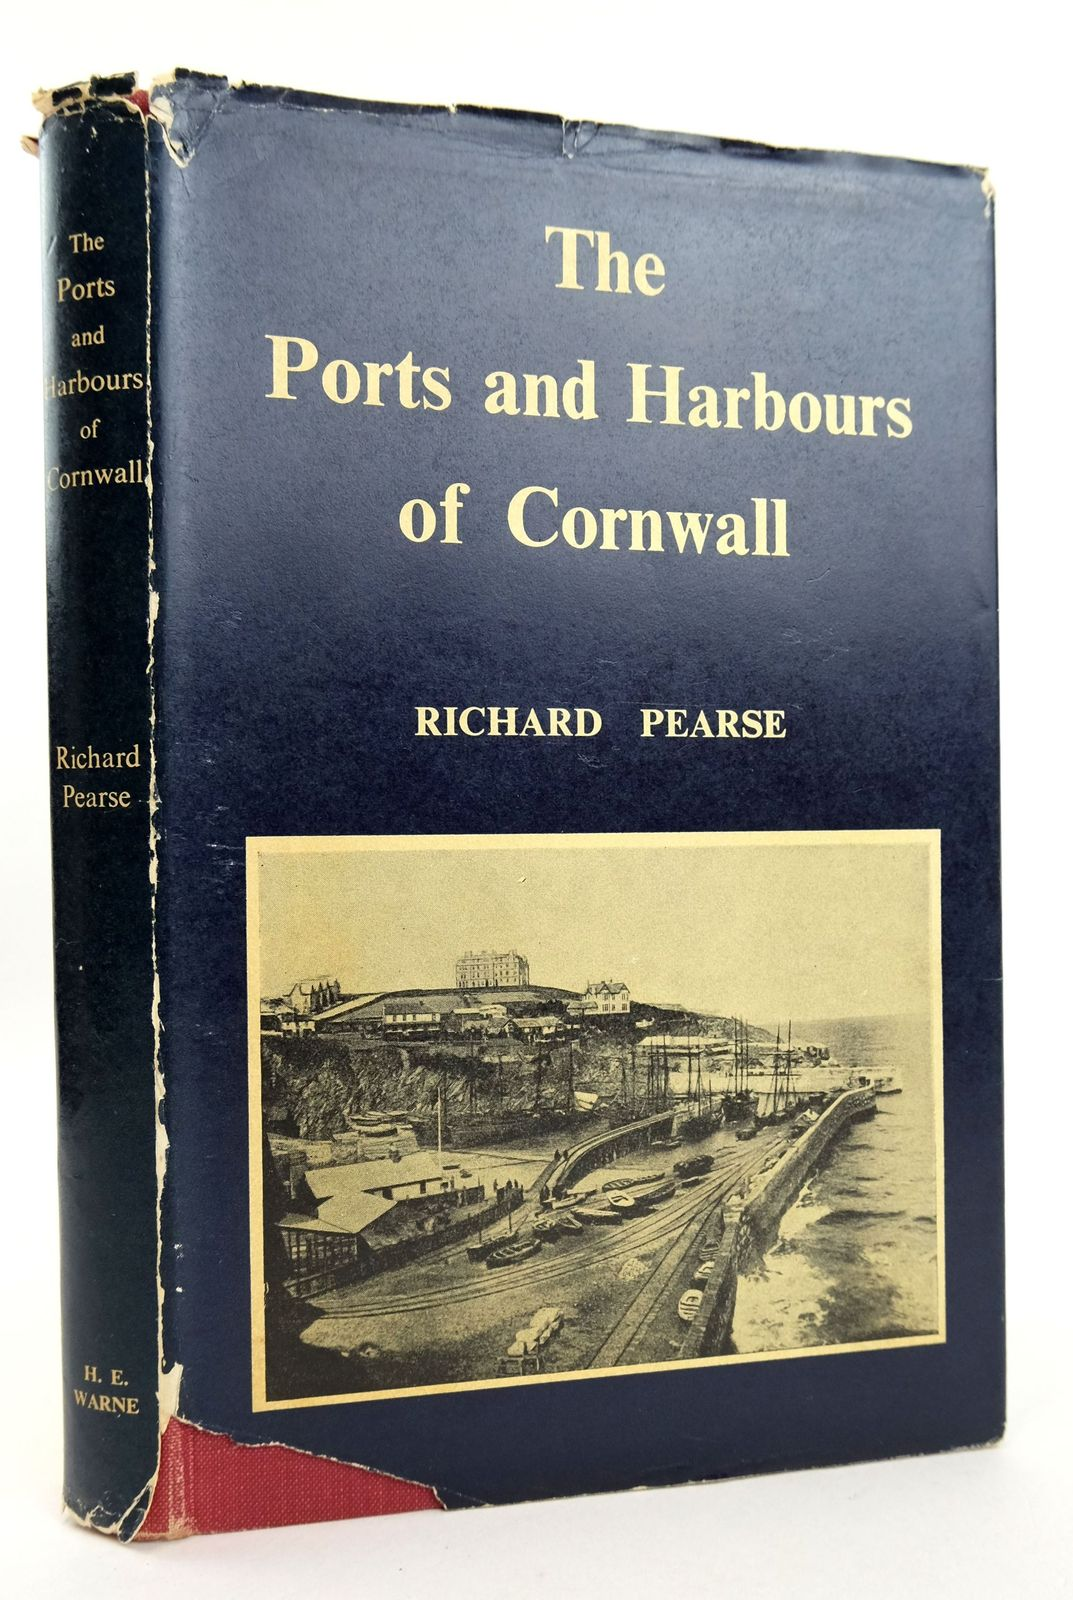 Photo of THE PORTS AND HARBOURS OF CORNWALL written by Pearse, Richard published by H.E. Warne (STOCK CODE: 1819067)  for sale by Stella & Rose's Books